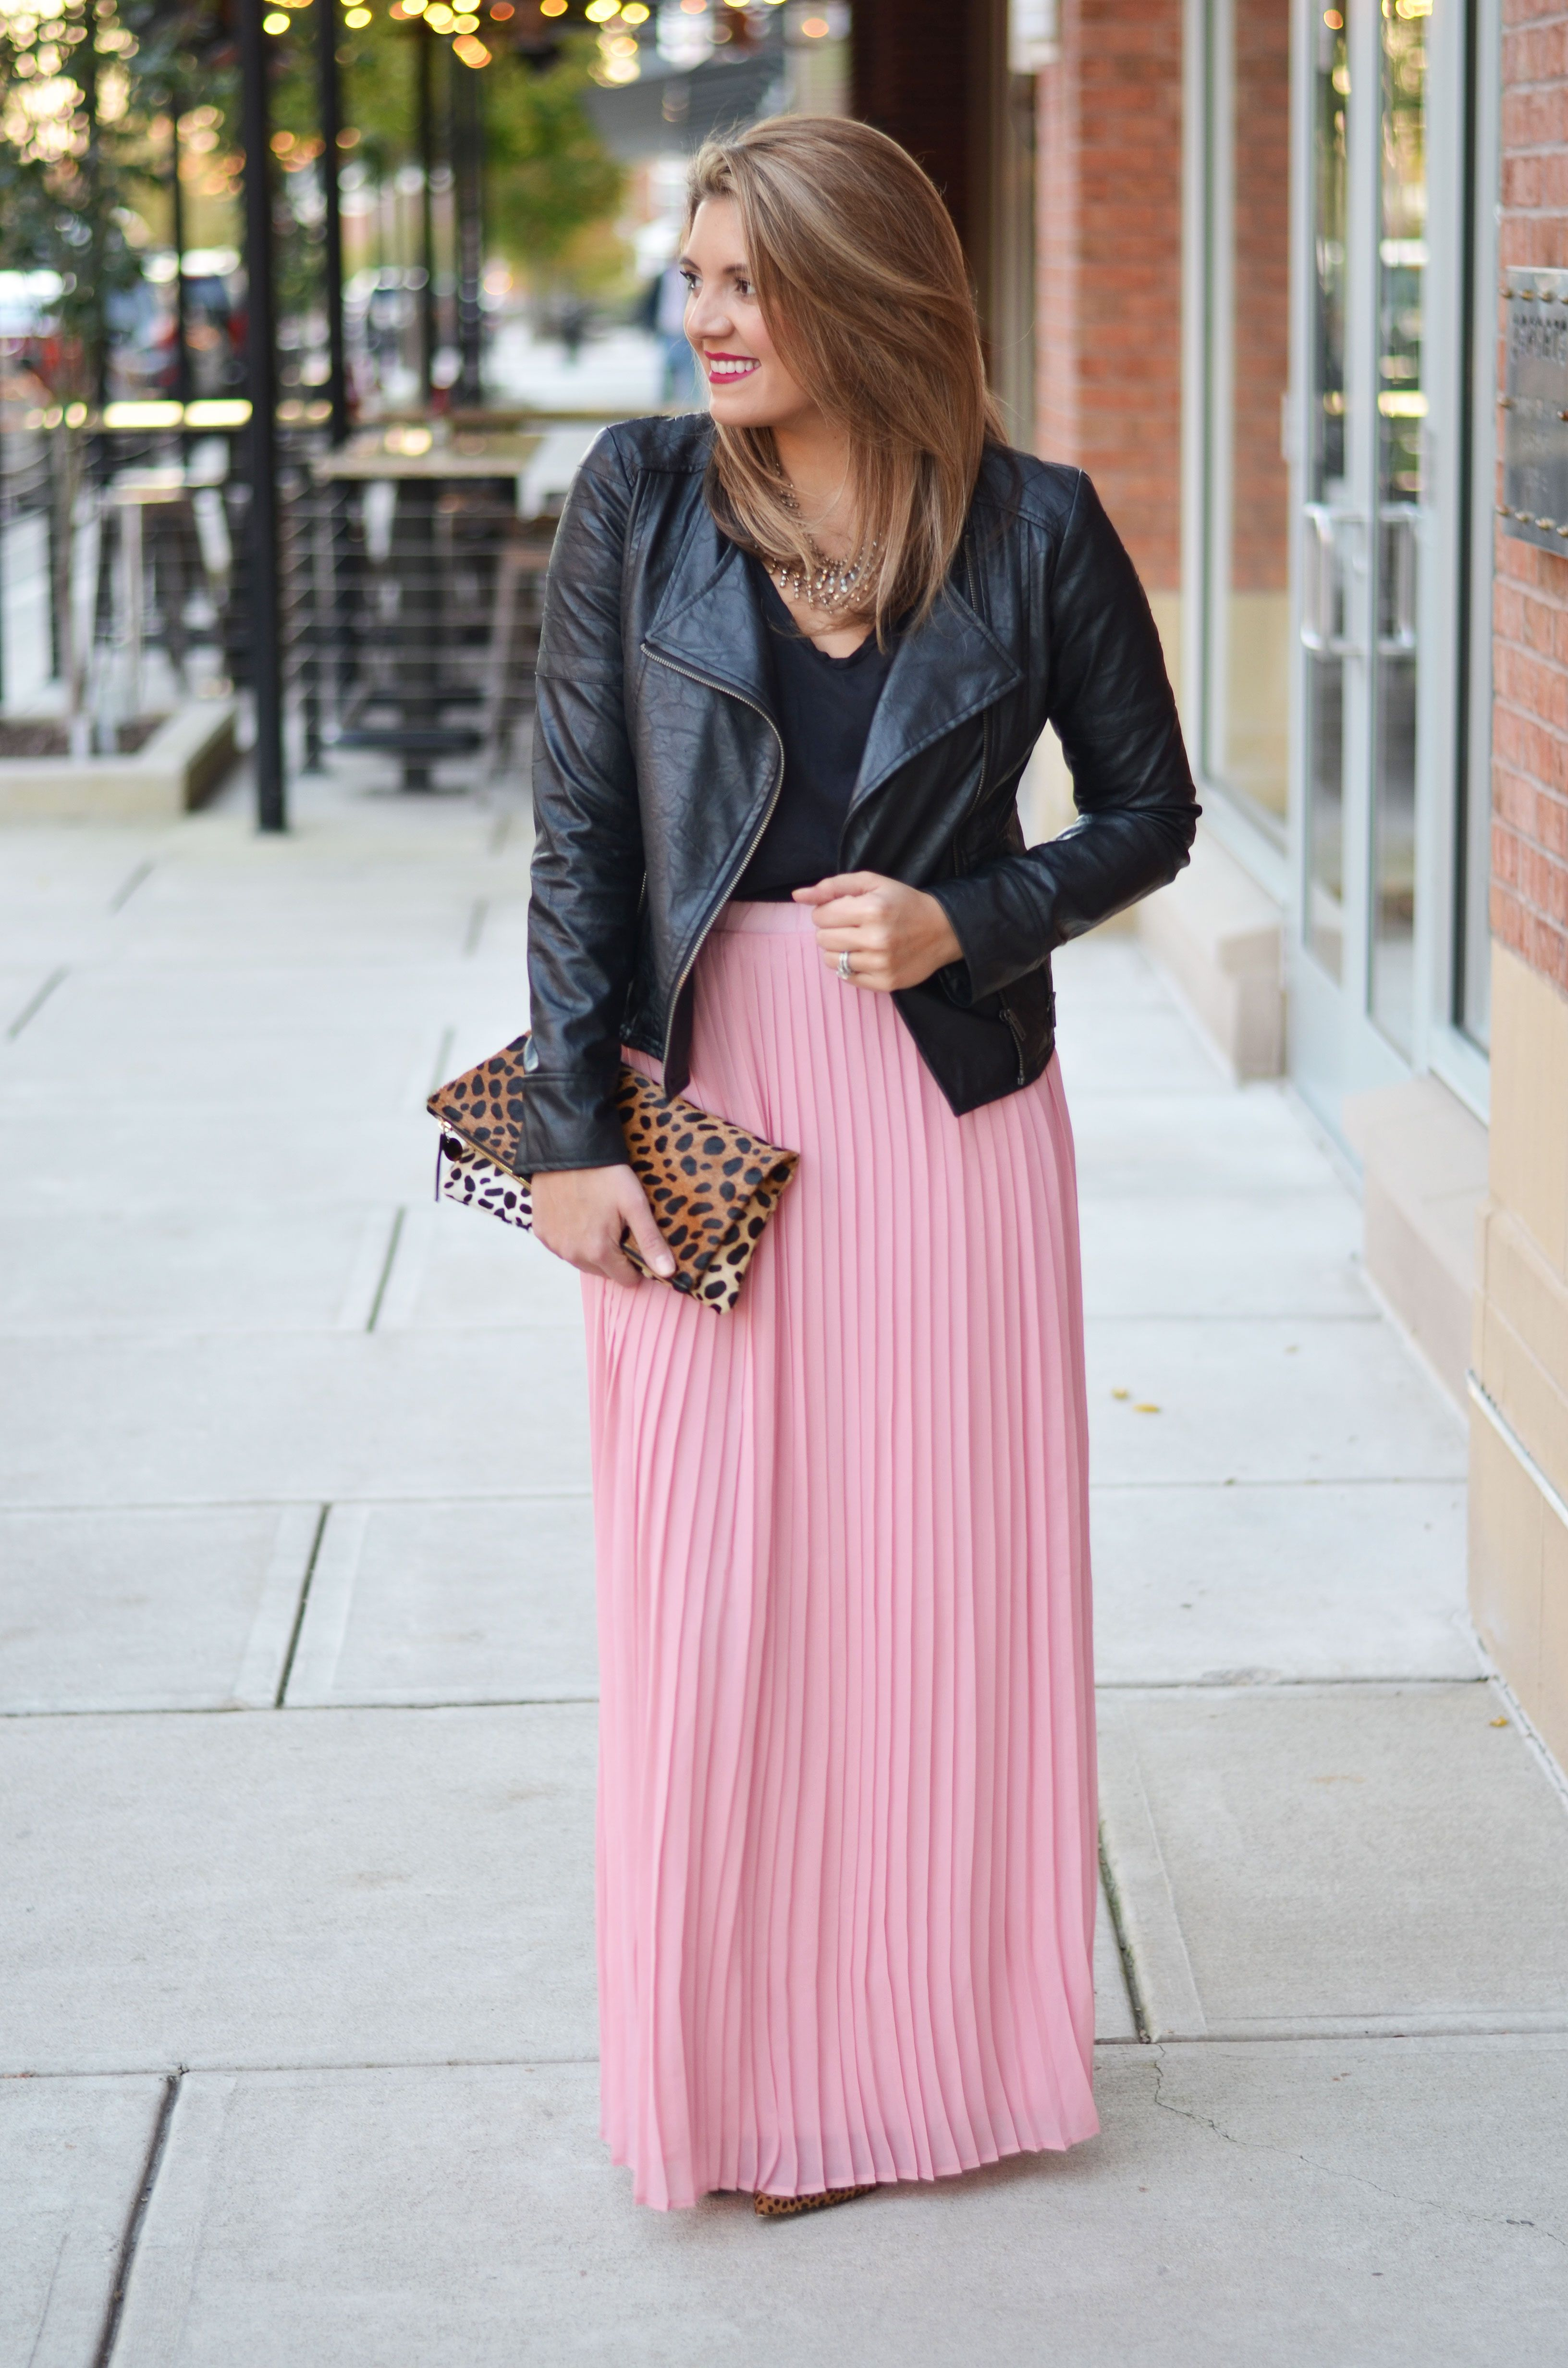 abdc4a6ece9 winter maxi skirt outfit - pink pleated maxi skirt with a leather jacket |  www.bylaurenm.com